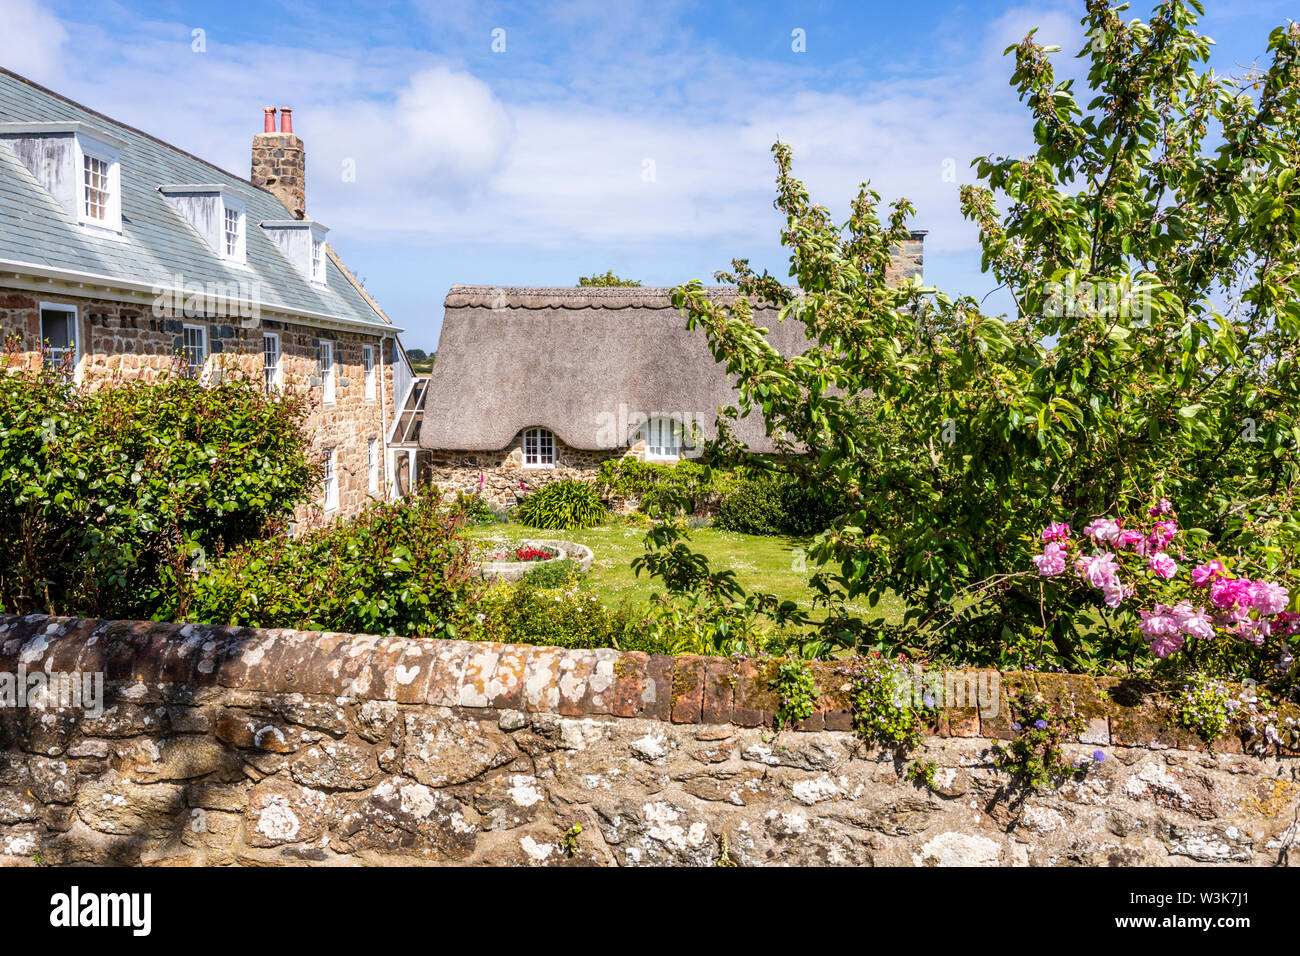 Saints Farm, a restored traditional farmhouse at Icart, Guernsey, Channel Islands UK Stock Photo